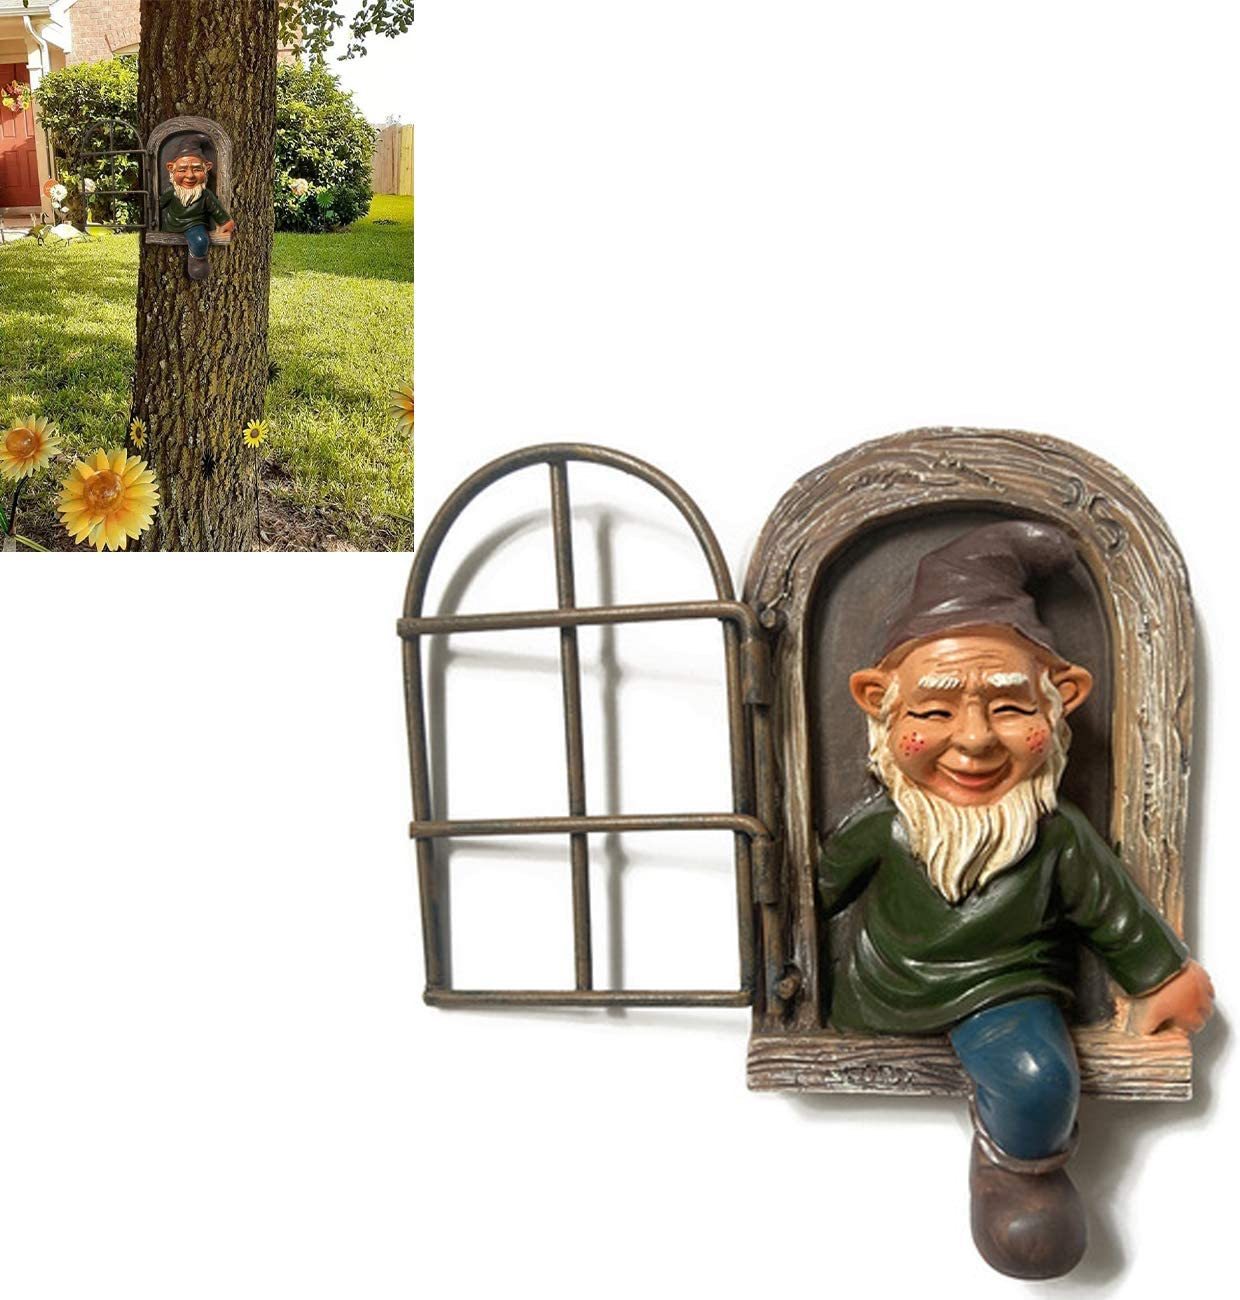 TAIYANYU Elf Out The Door Tree Hugger, Naughty Garden Gnome Peeker, Resin Crafts Whimsical Dwarf Statues (Grandpa Garden gnome)